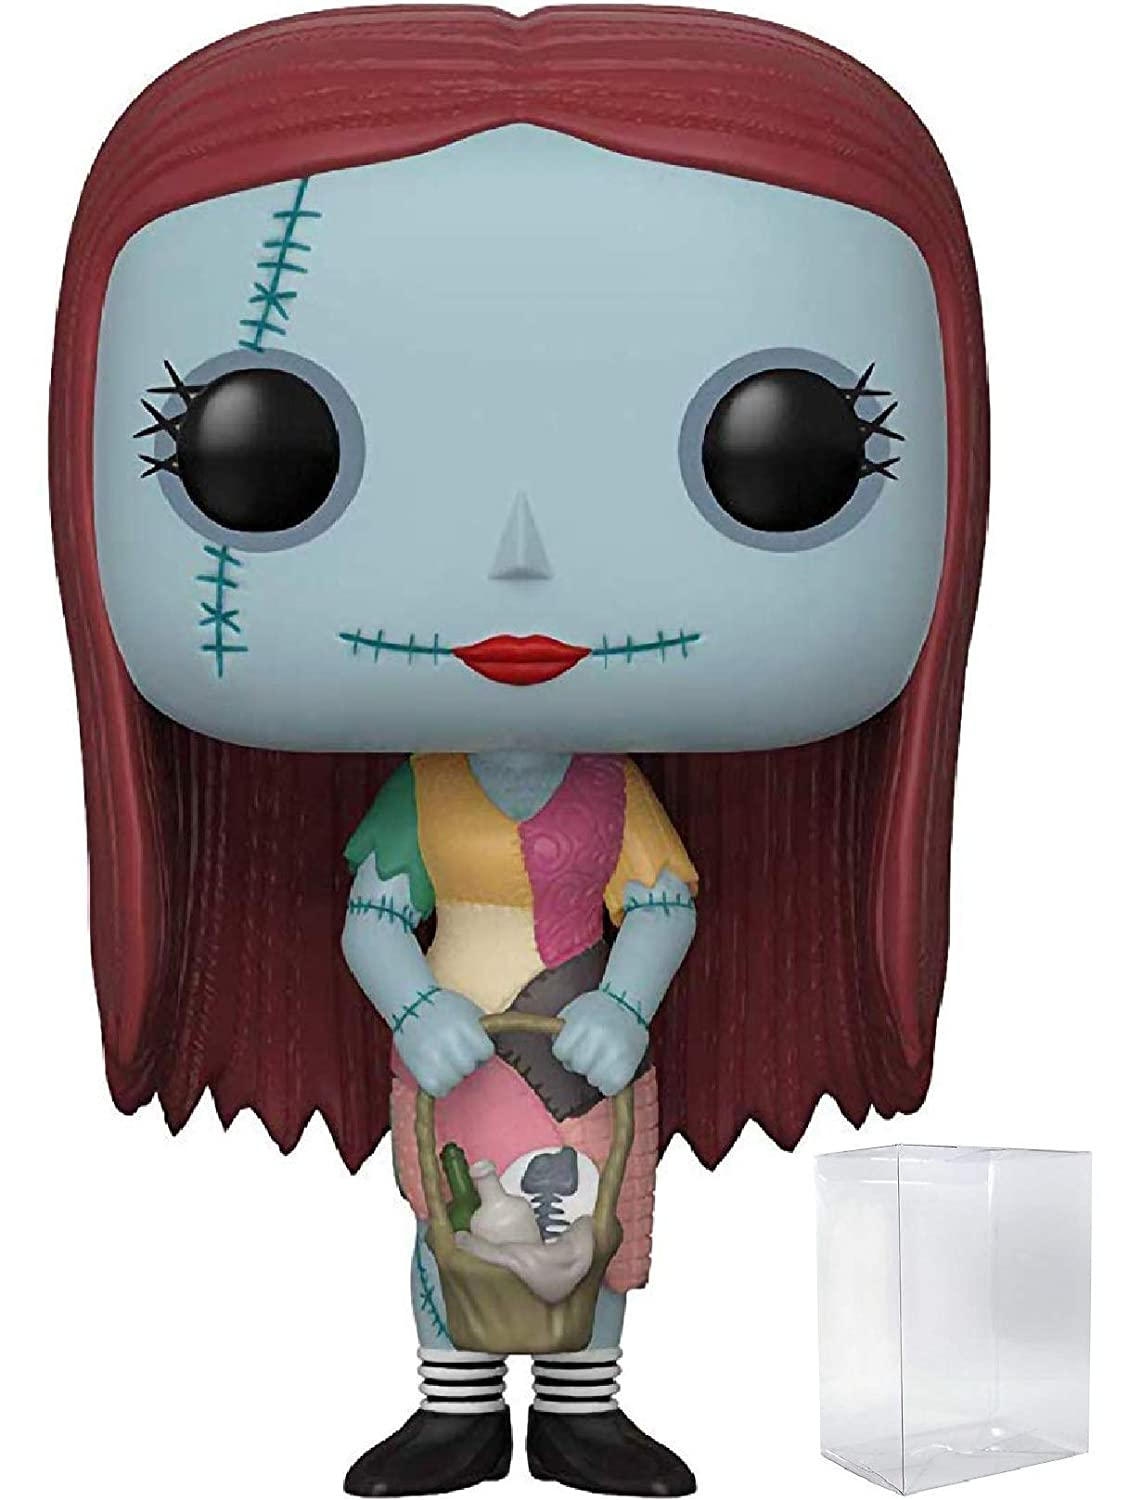 Disney: The Nightmare Before Christmas Includes Pop Box Protector Case Funko Pop Sally with Basket Vinyl Figure